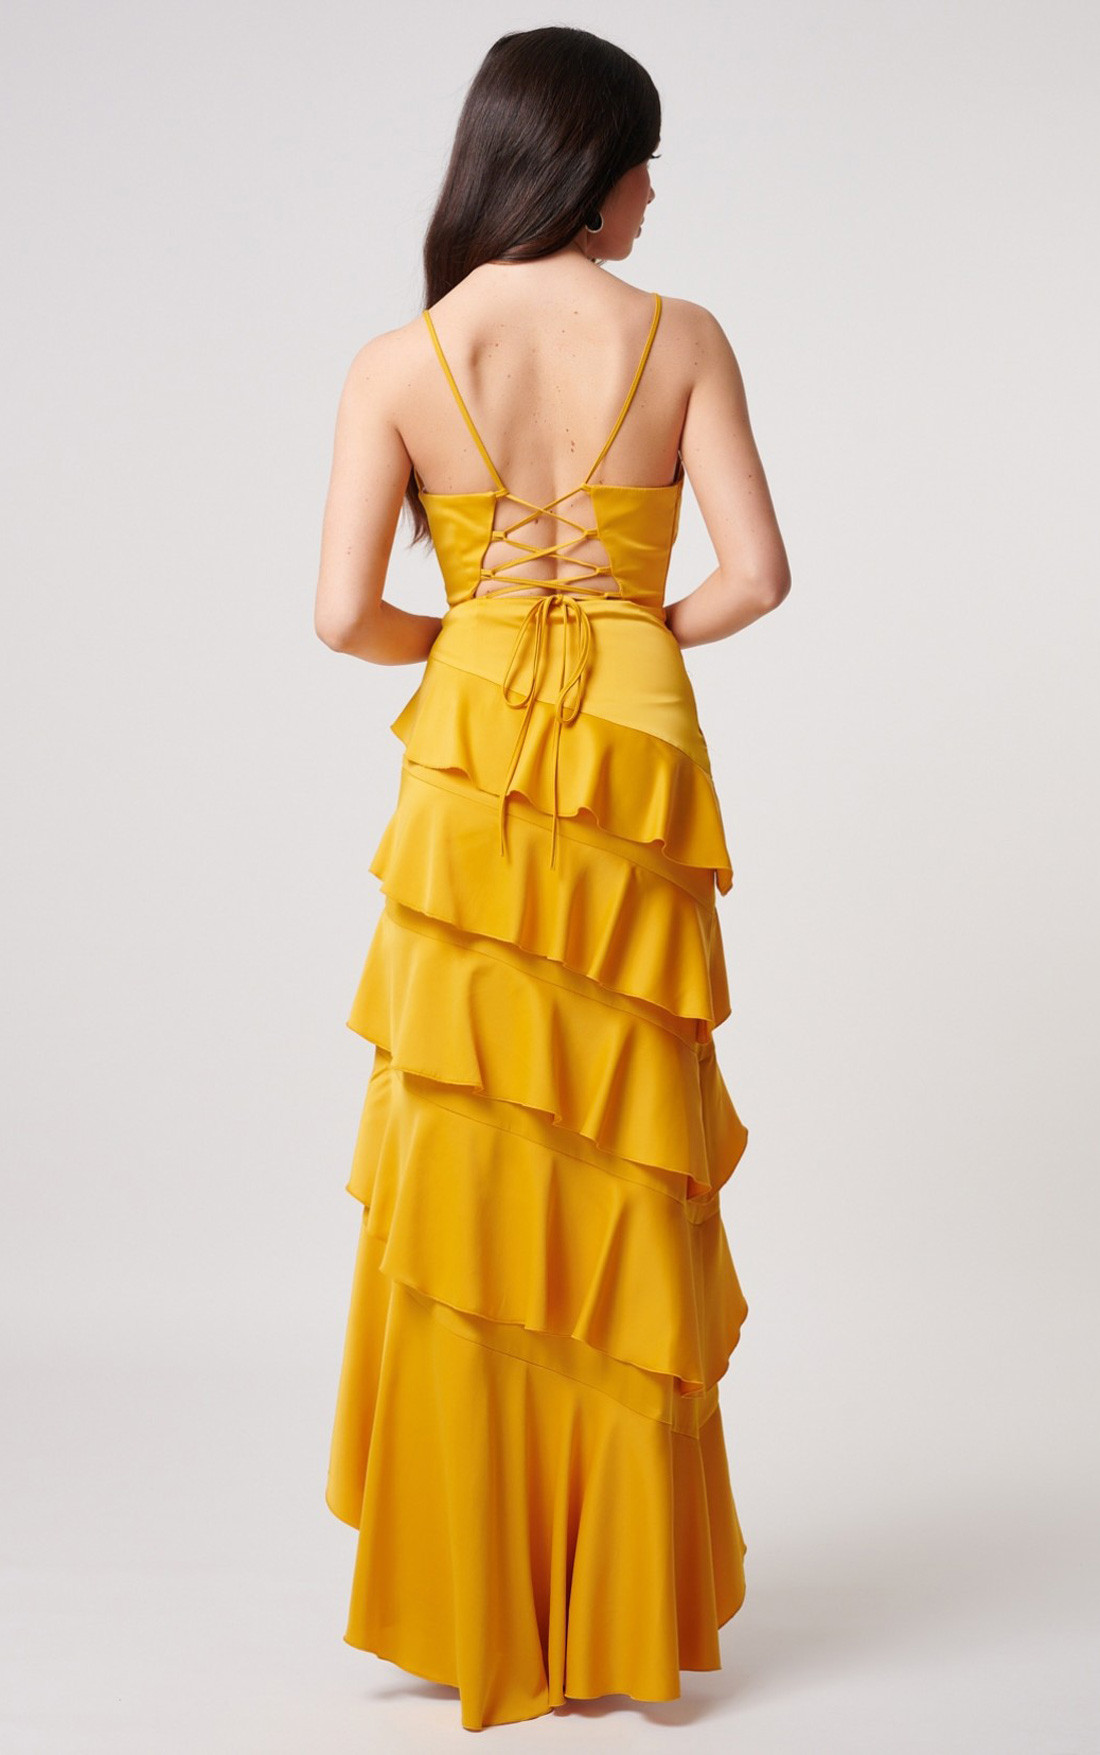 Forever Unique - Kalene Yellow Satin Maxi Dress With Tiered Ruffle Detailing (MN201002)